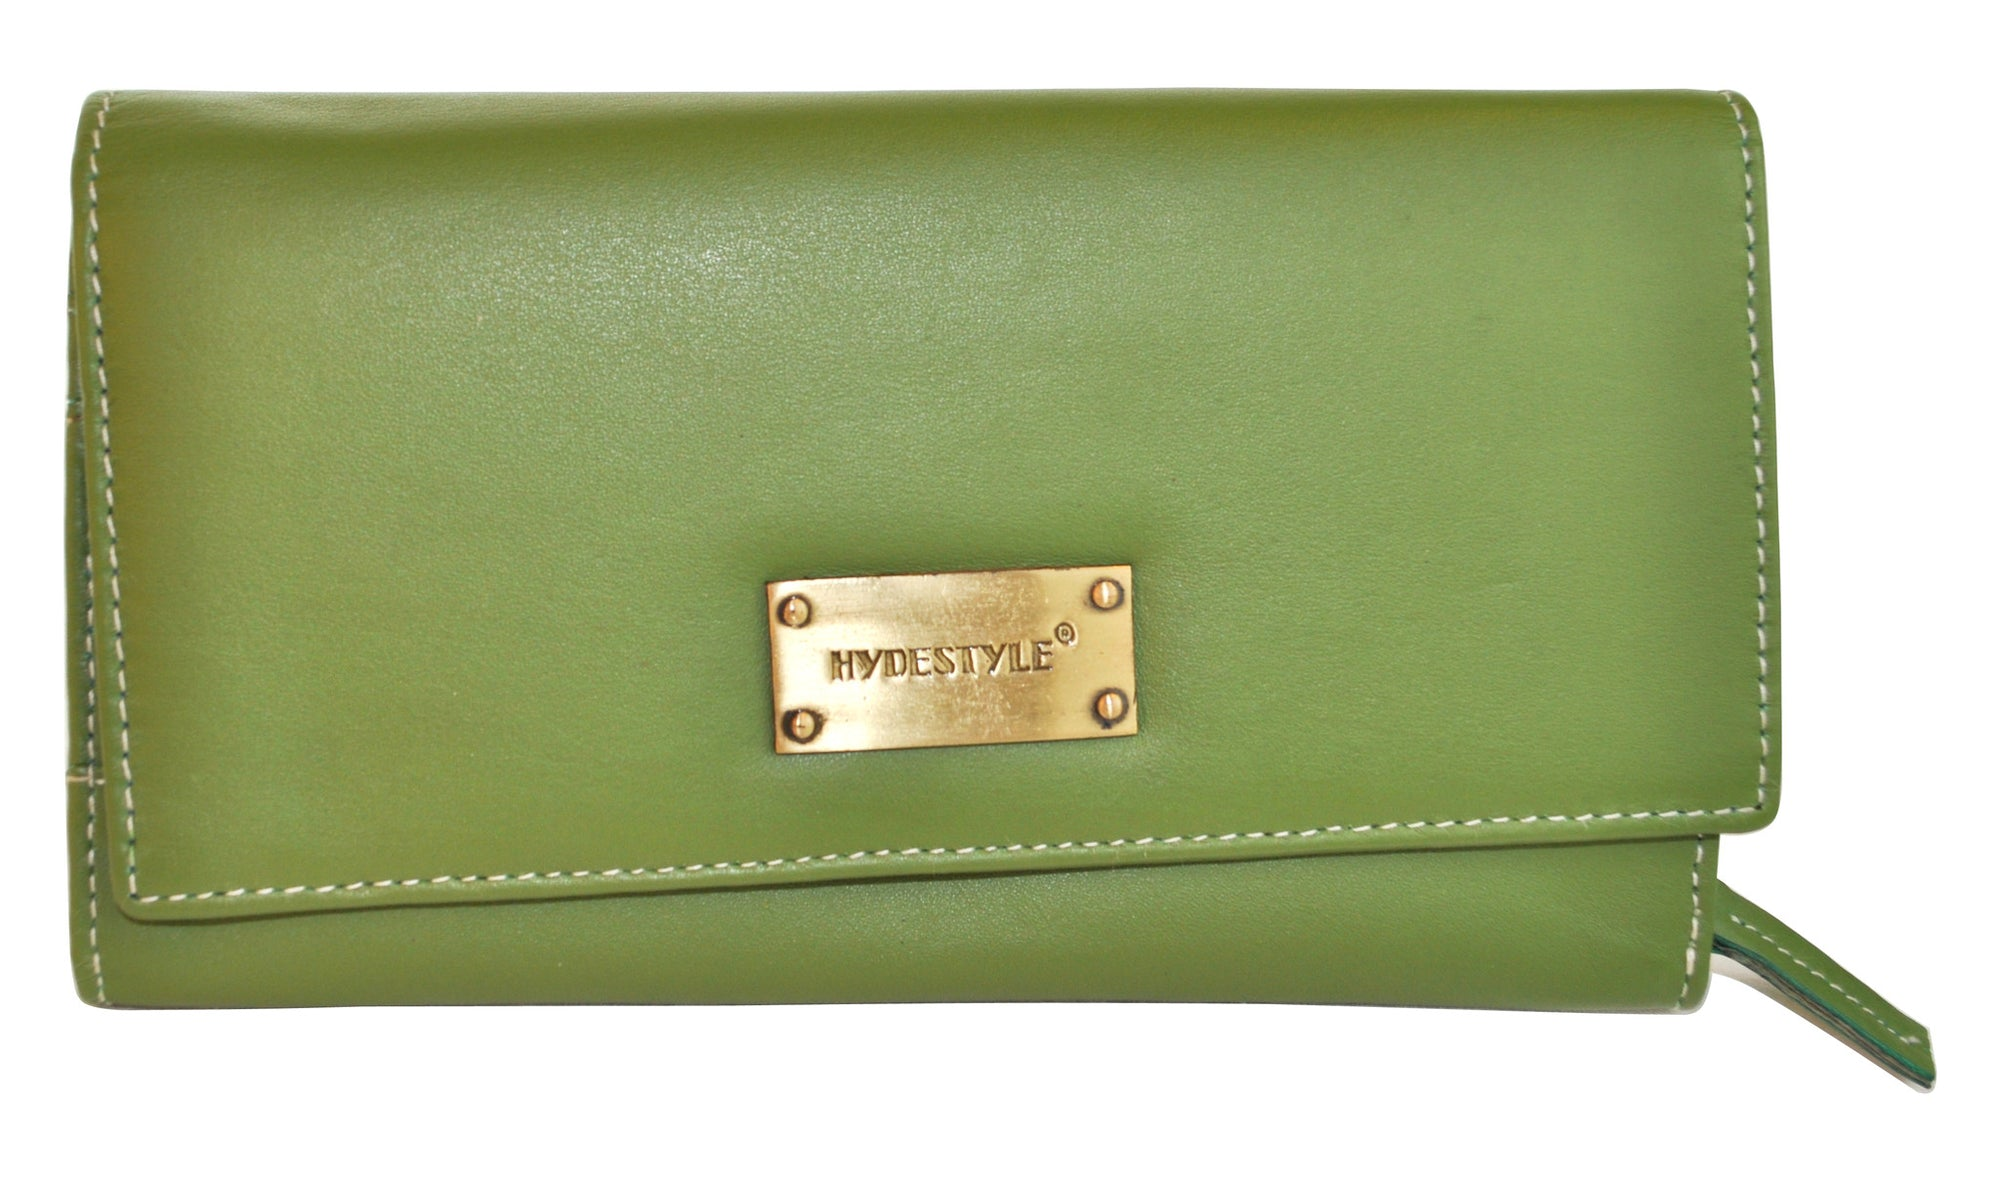 Pratico - women full Flap Leather Wallet #LW07 Green